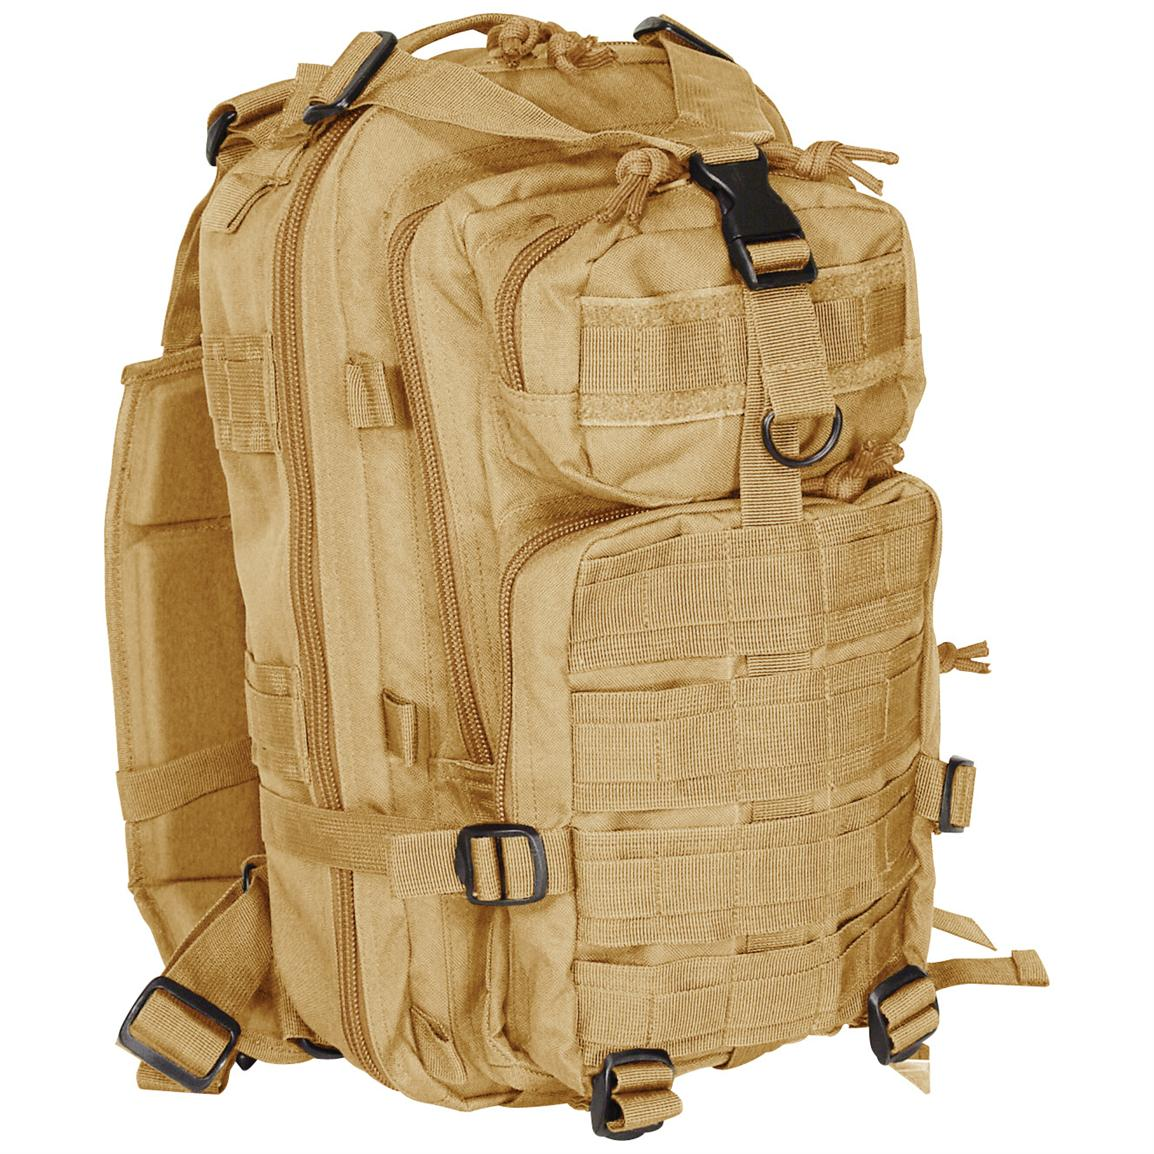 Level III Assault Pack, Coyote Tan